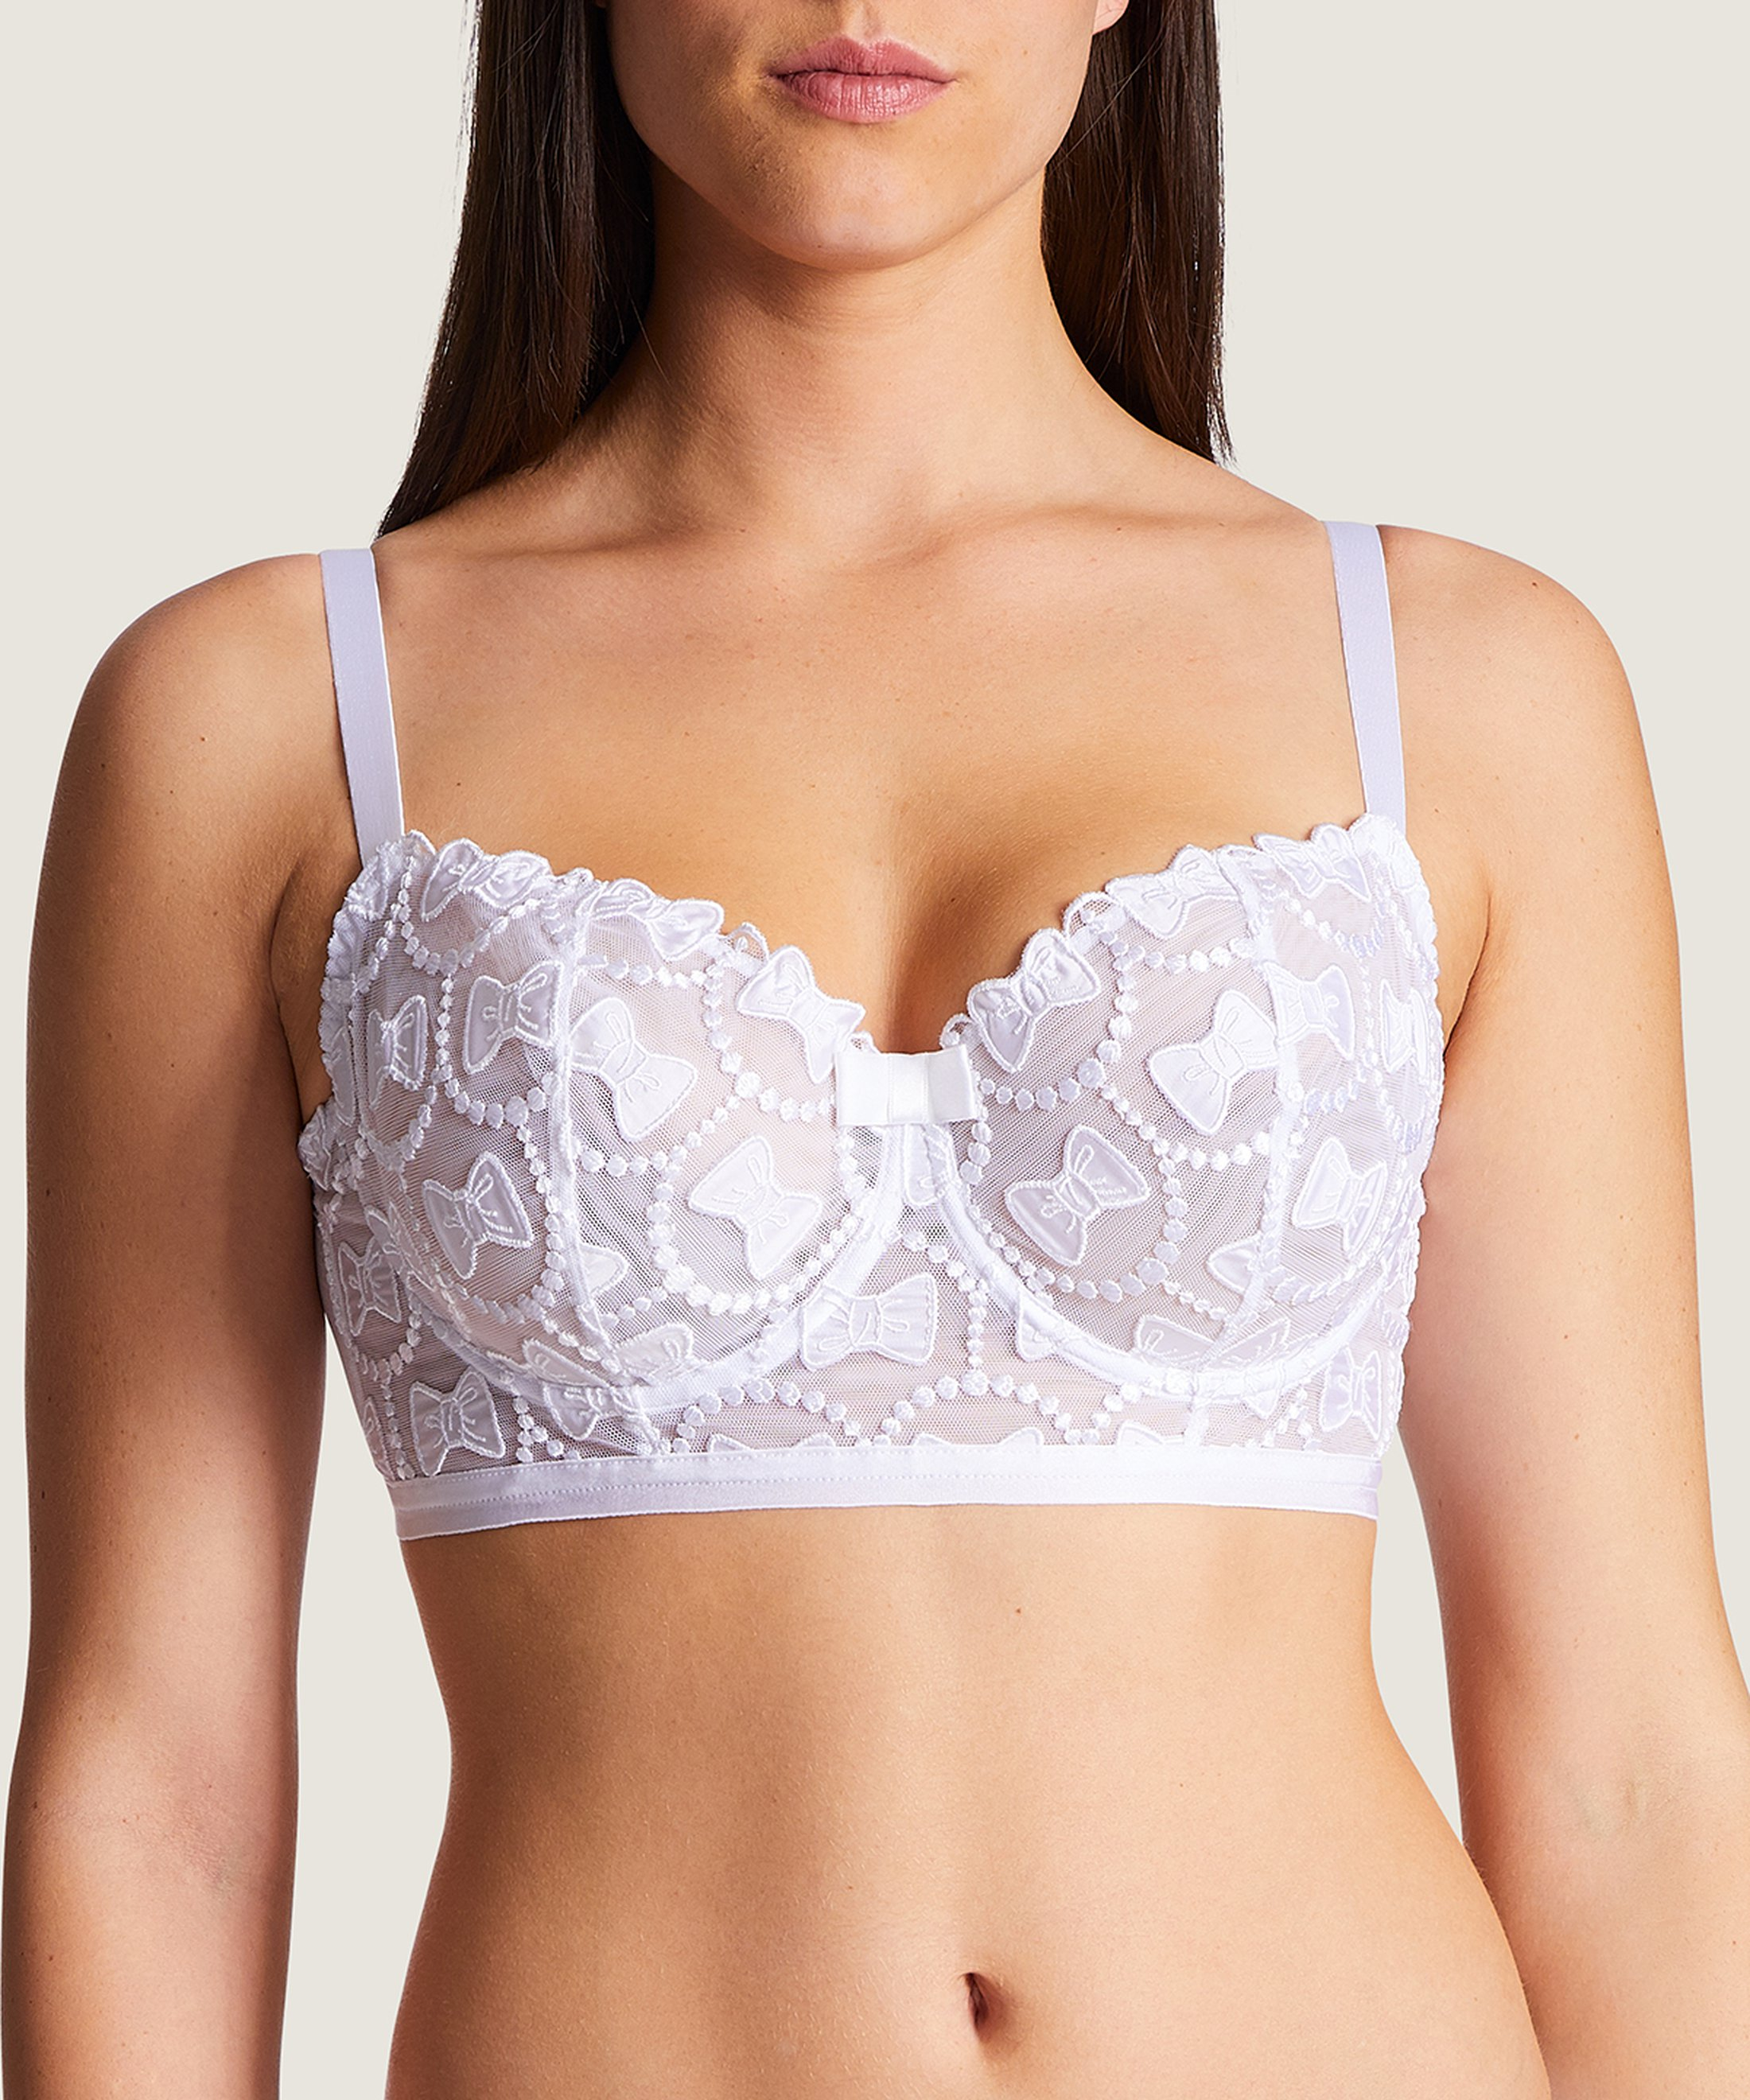 THE BOW COLLECTION Soutien-gorge corbeille confort Blanc | Aubade